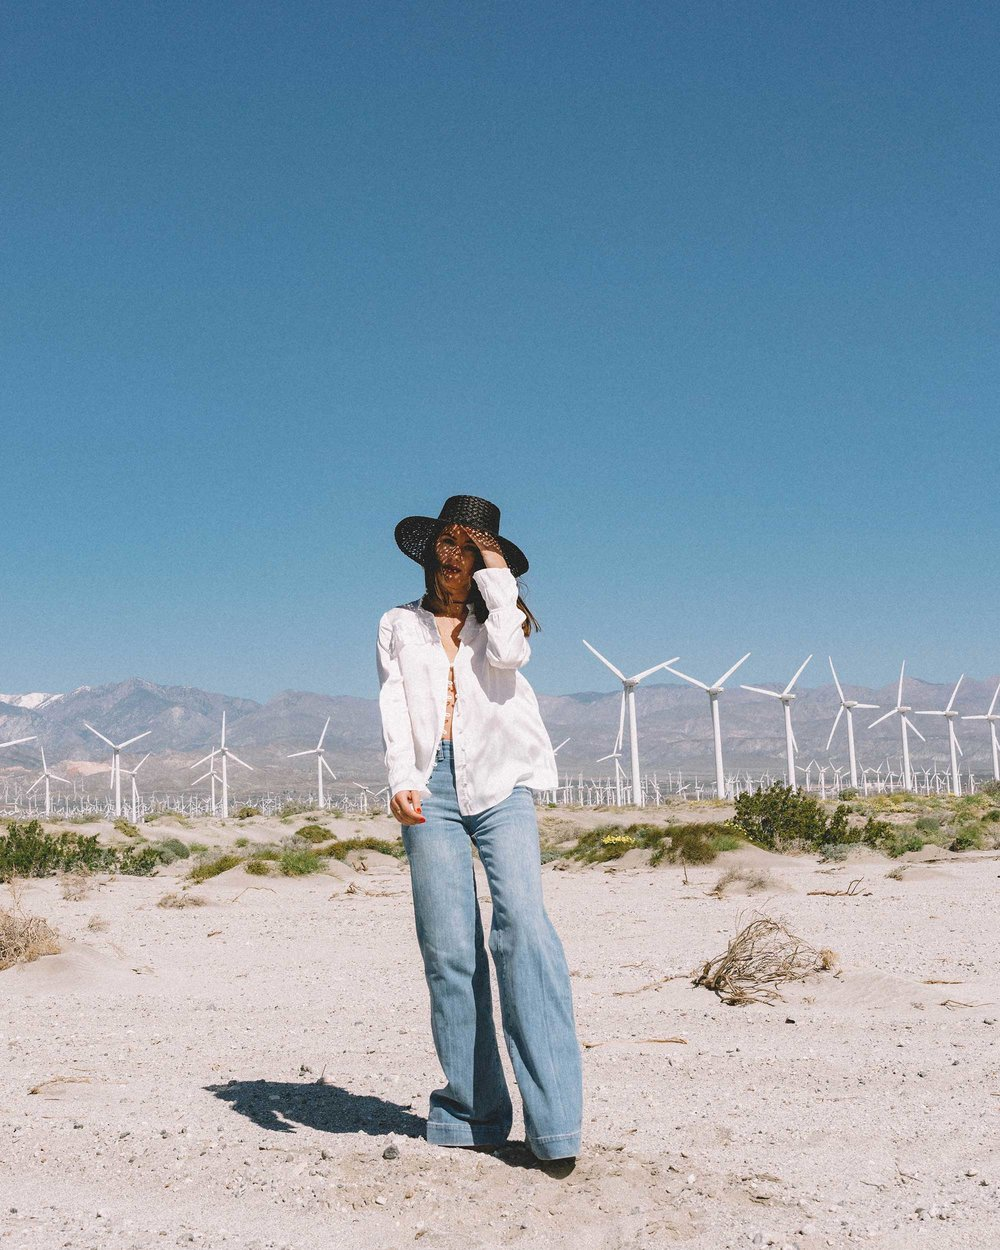 Sarah Butler of Sarah Styles Seattle wears Paige Anguilla Long-Sleeve Blouse with Layered Ruffle Trim, Paige Sutton High Waist Wide Leg Jeans, and Lack of Color Women's Sunnydip Noir Hat in Palm Springs for Coachella Festival Outfit   @sarahchristine4.jpg